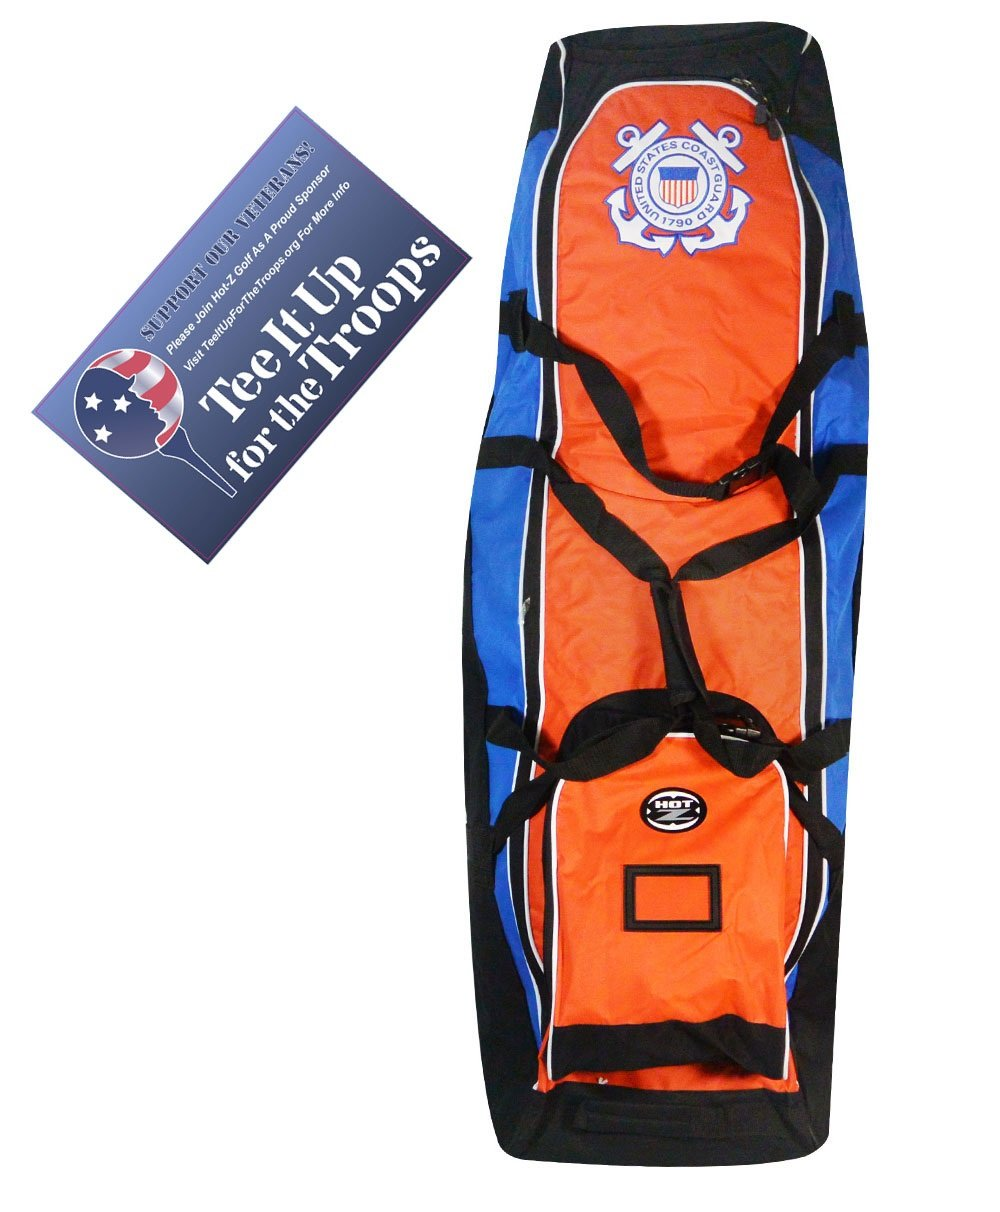 Hot-Z Golf Coast Guard US Military Travel Cover